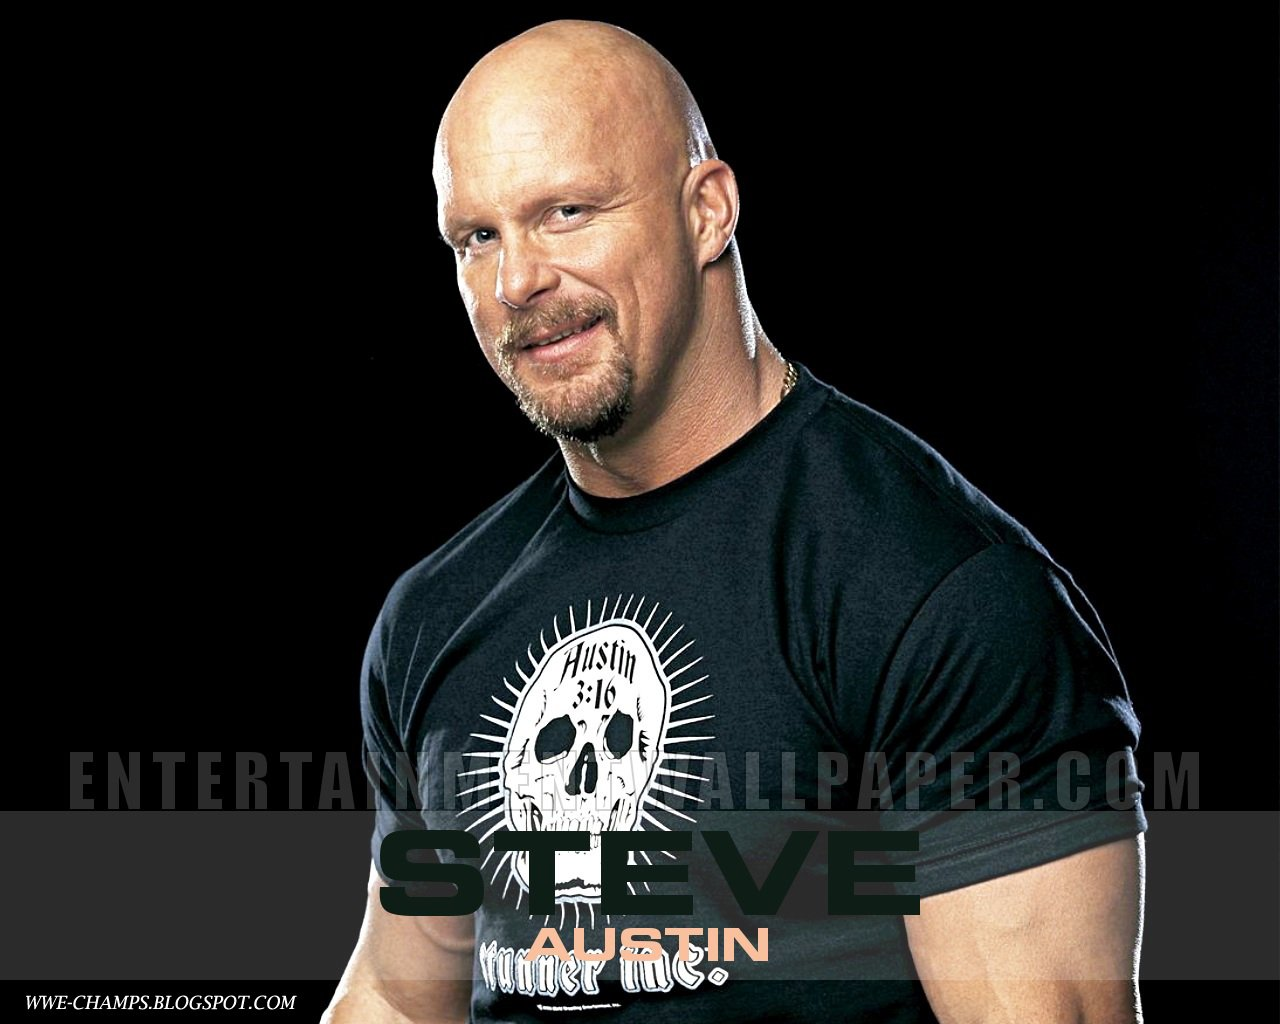 WWE CHAMPS STONE COLD STEVE AUSTIN WHAT 1280x1024